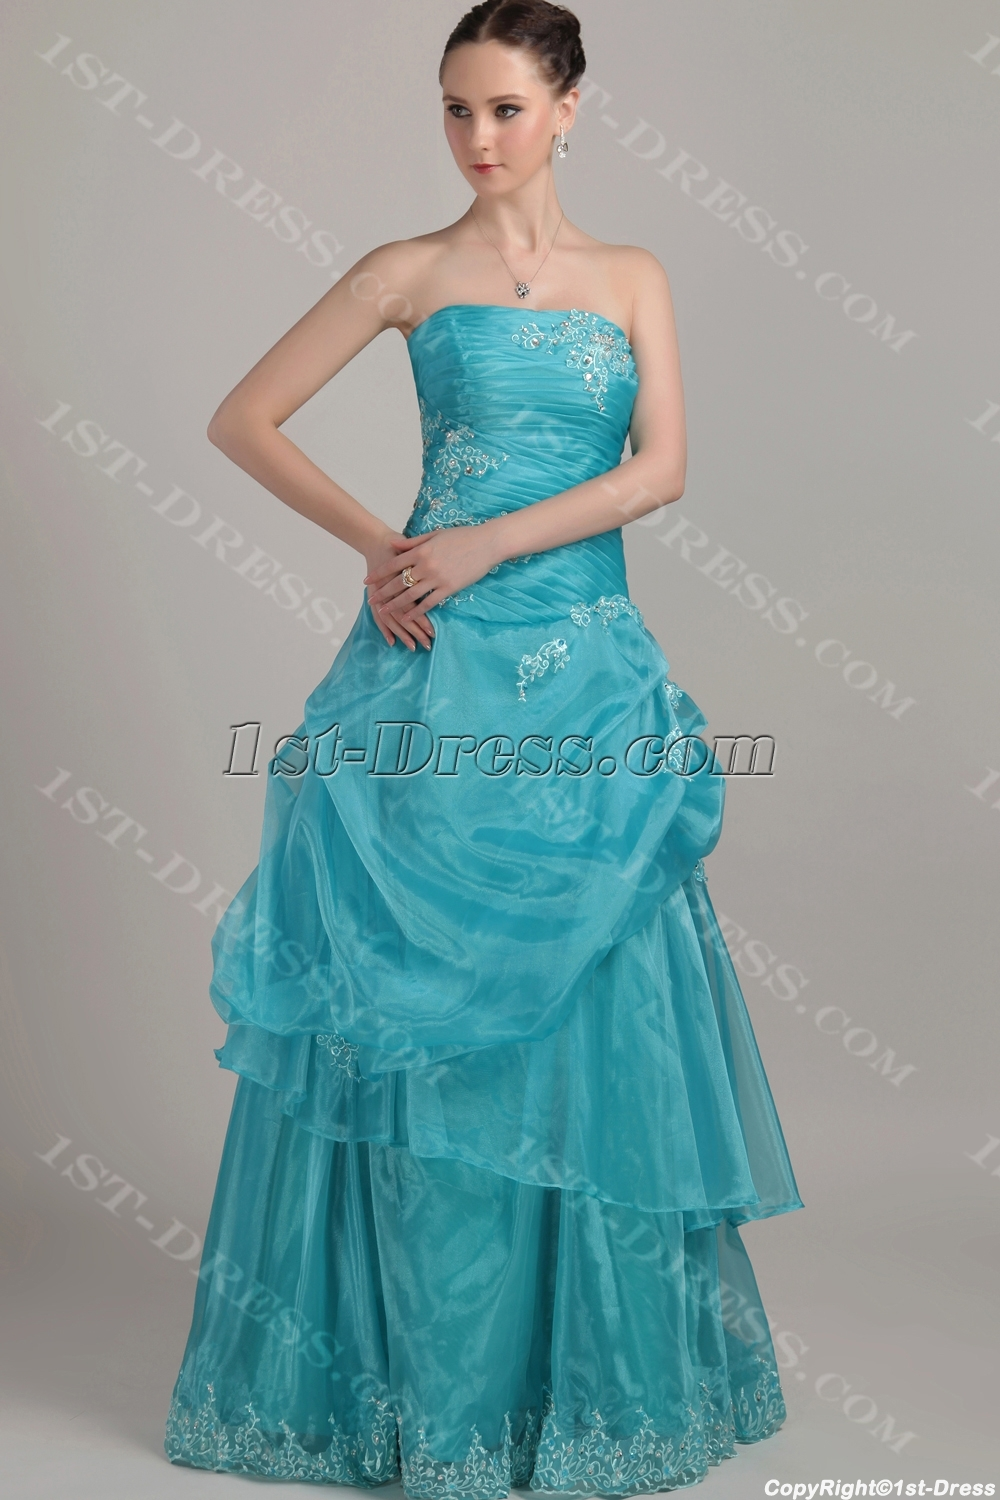 images/201304/big/Cheap-Turquoise-Blue-Ball-Gown-Dresses-2012-Long-IMG_3228-1058-b-1-1366189901.jpg